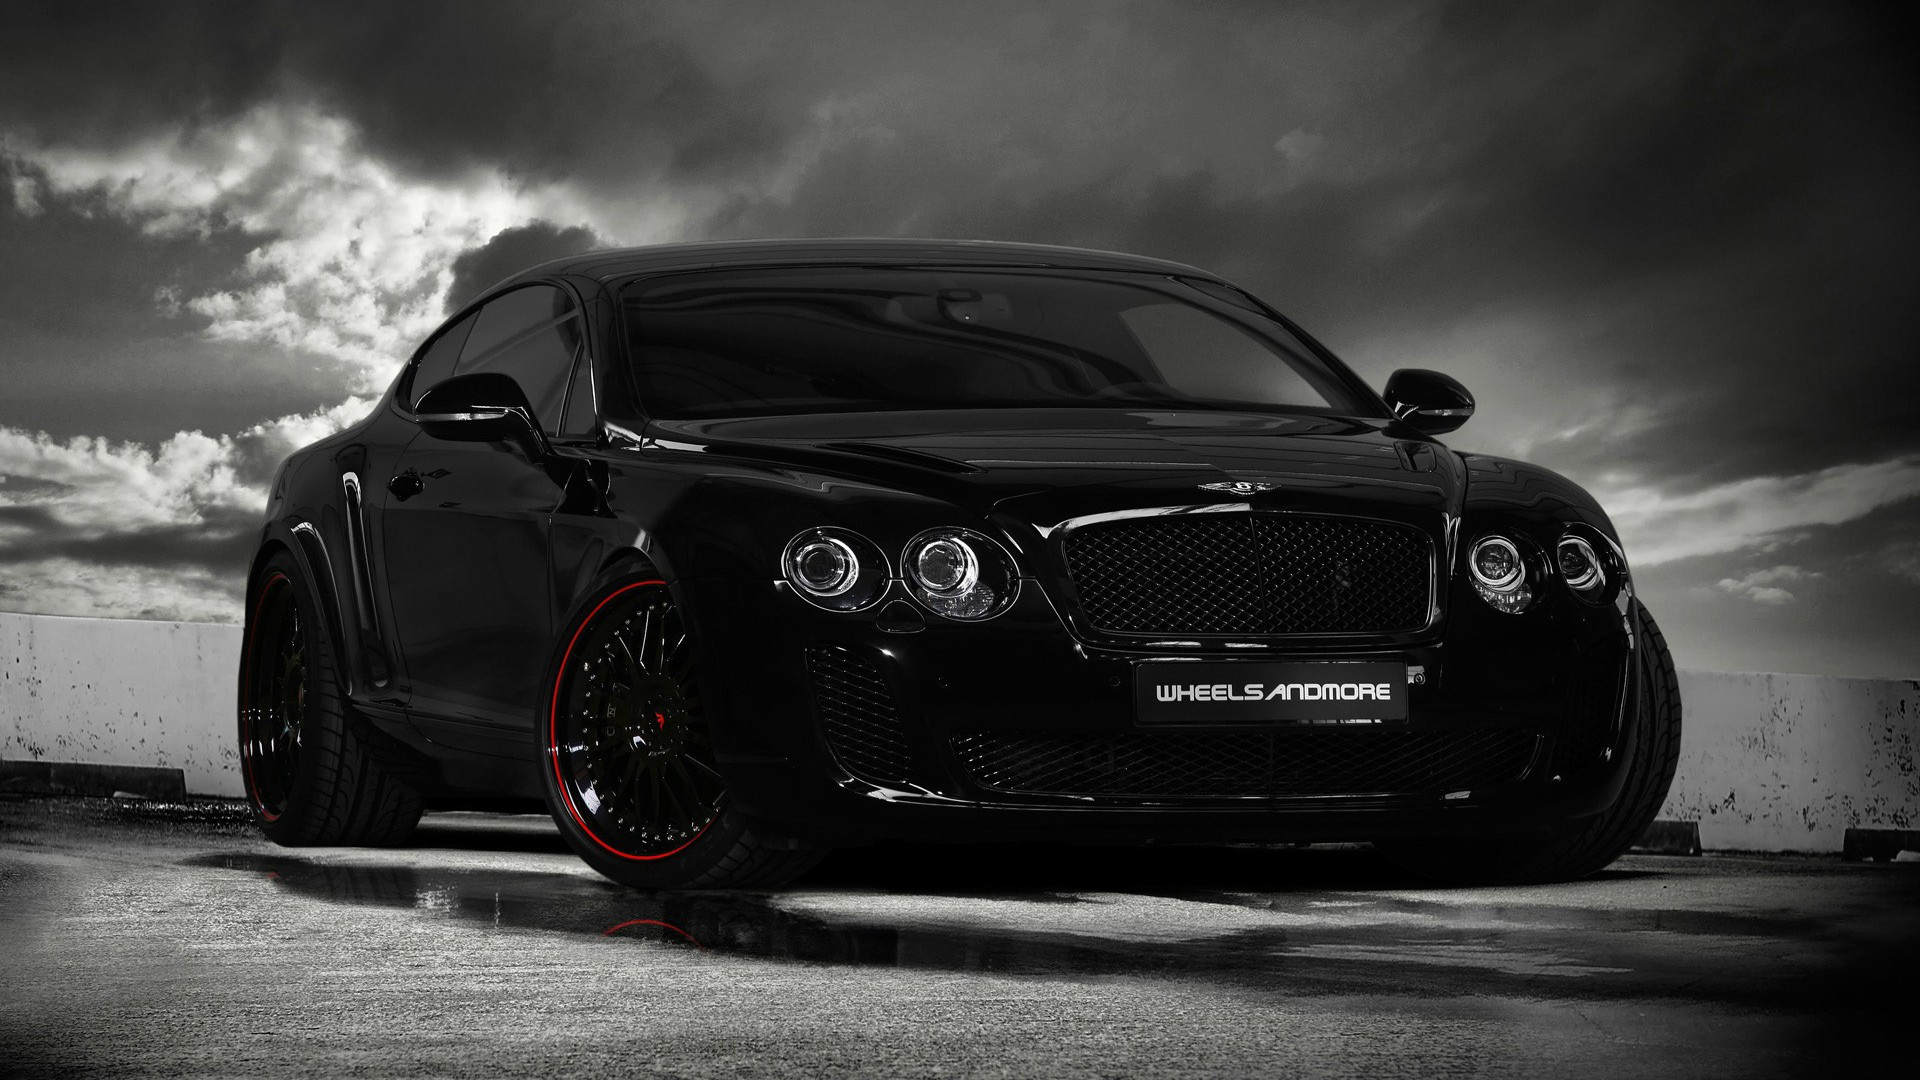 72 Black Car Wallpaper On Wallpapersafari